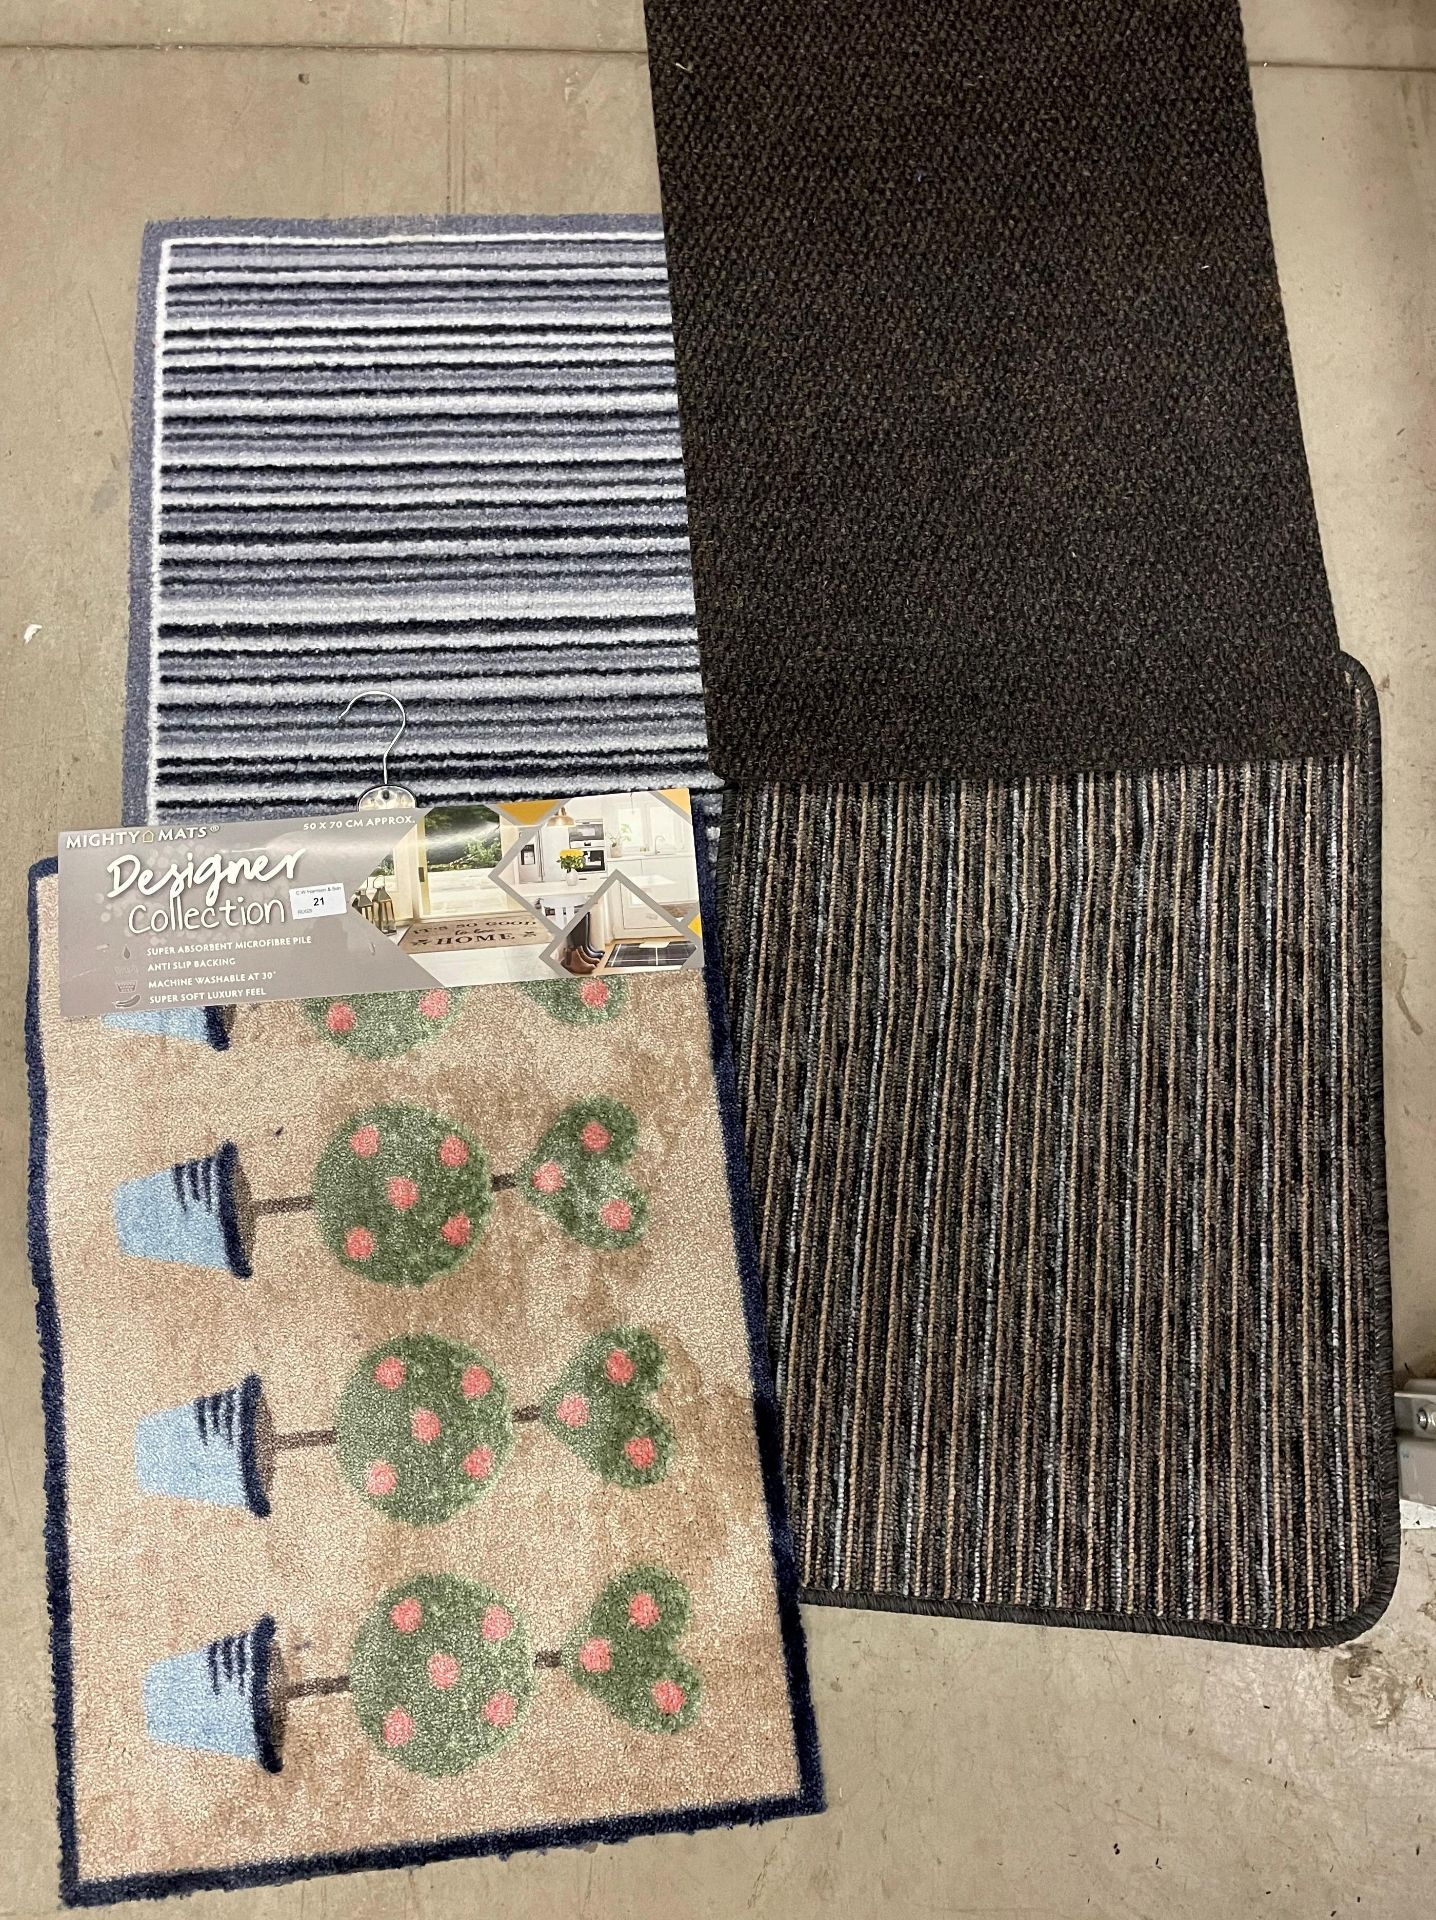 16 x assorted rugs - various sizes (50 x 70cm,